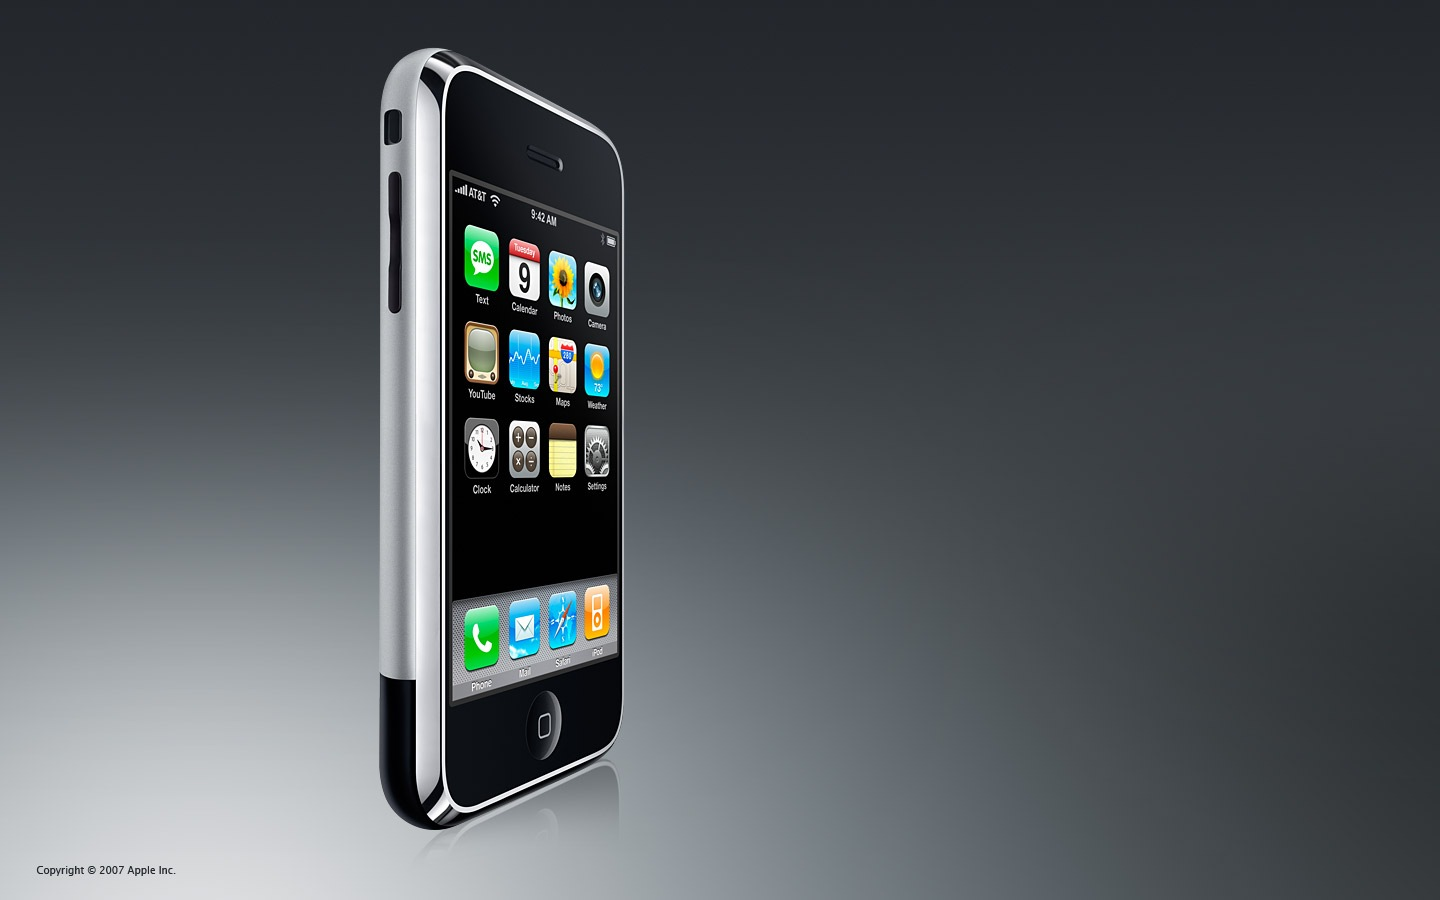 Iphone  Le Bouton Home Bouge Quand On Appuie